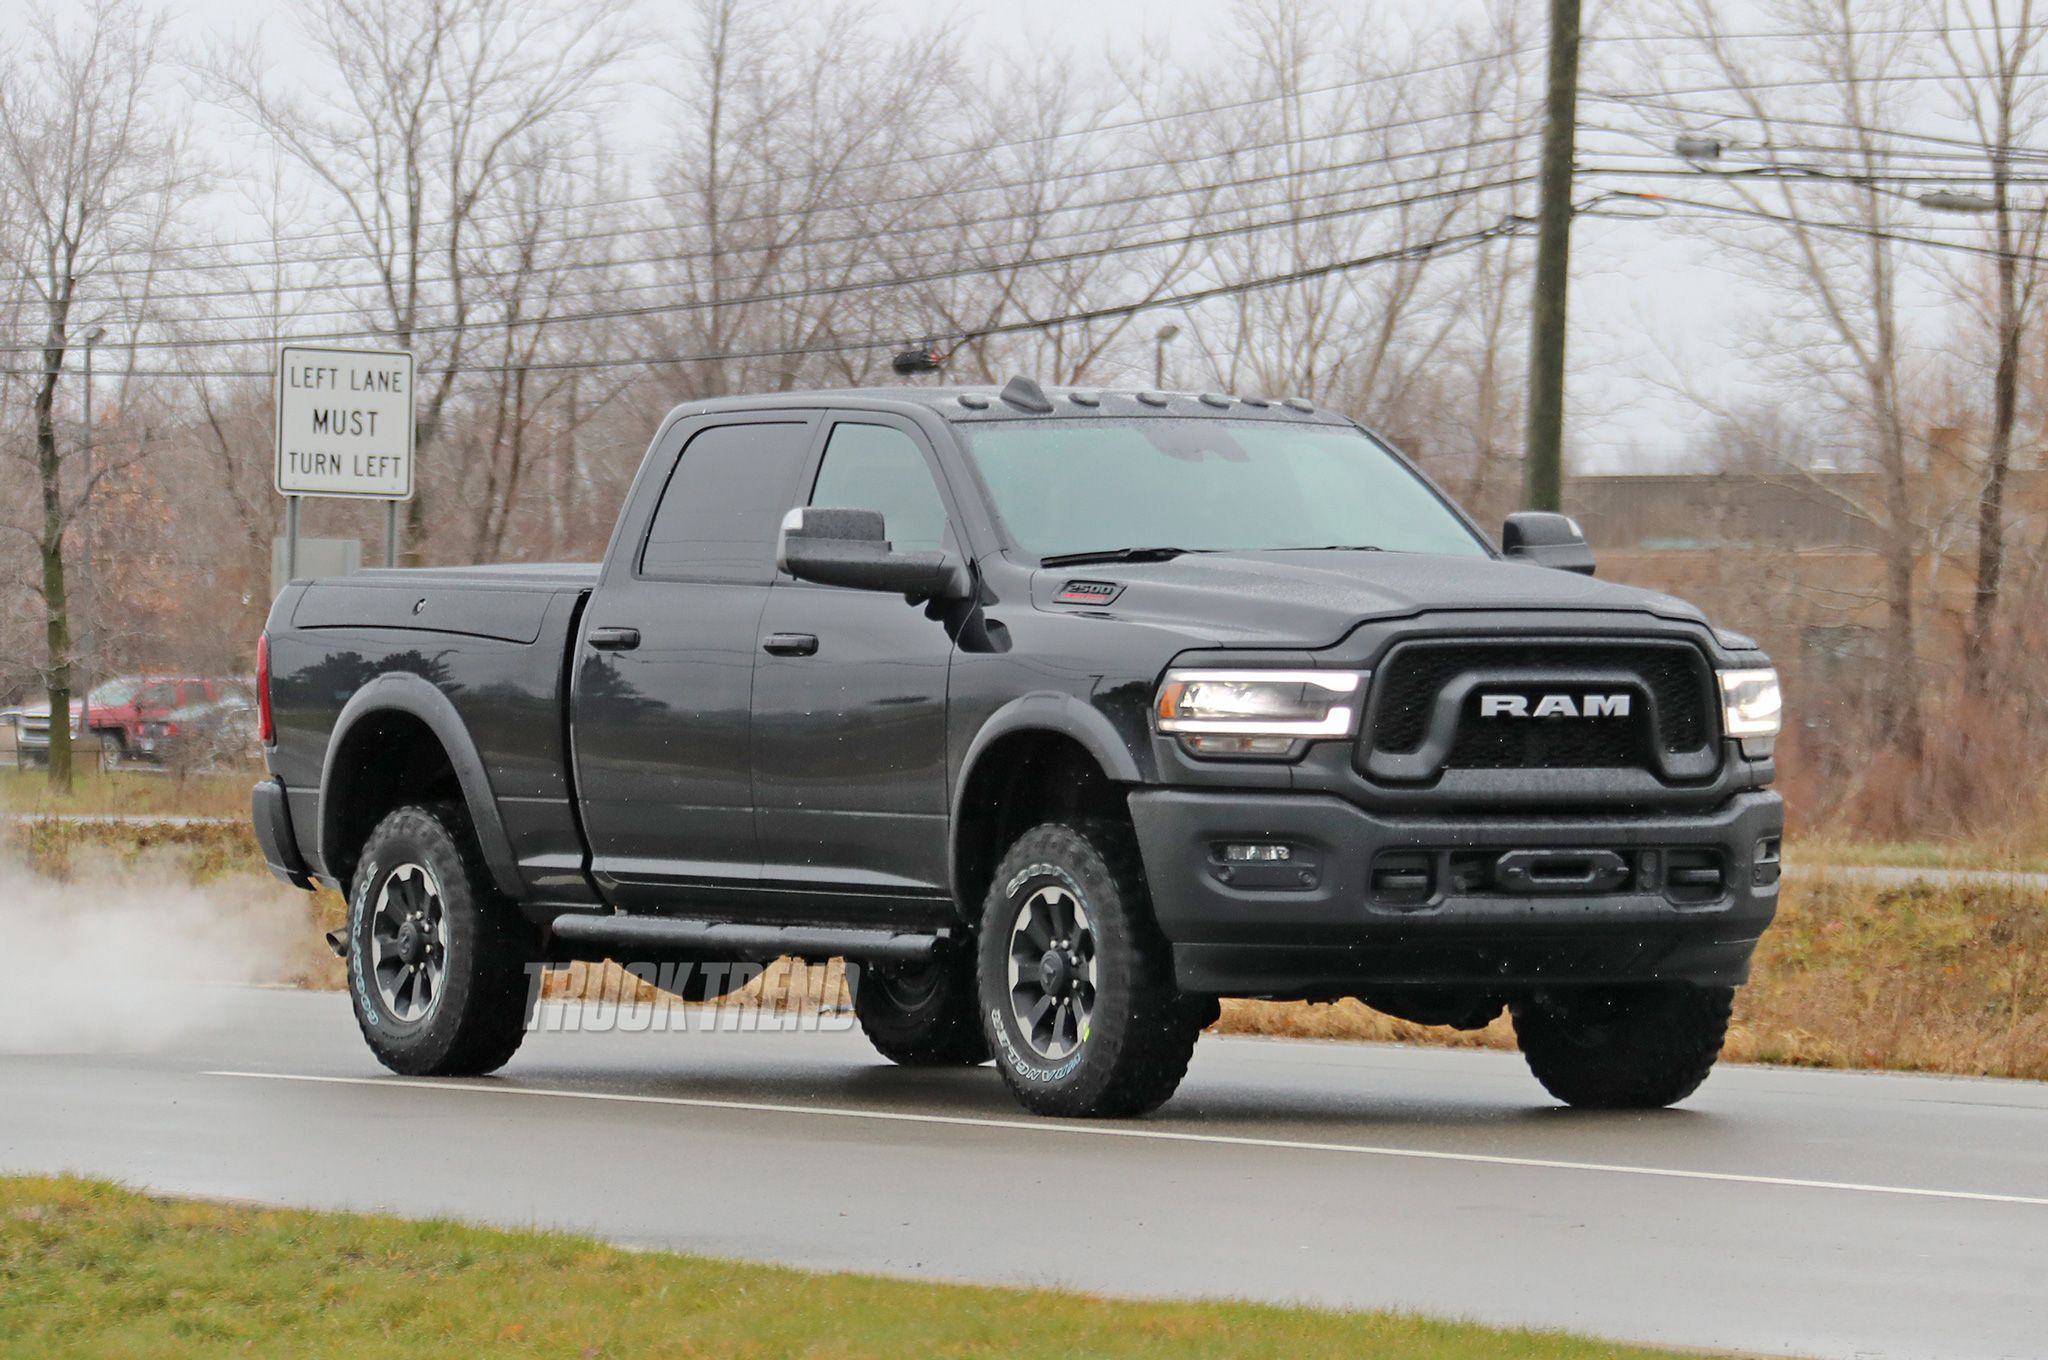 28 New 2020 Ram 2500 Diesel Price and Review